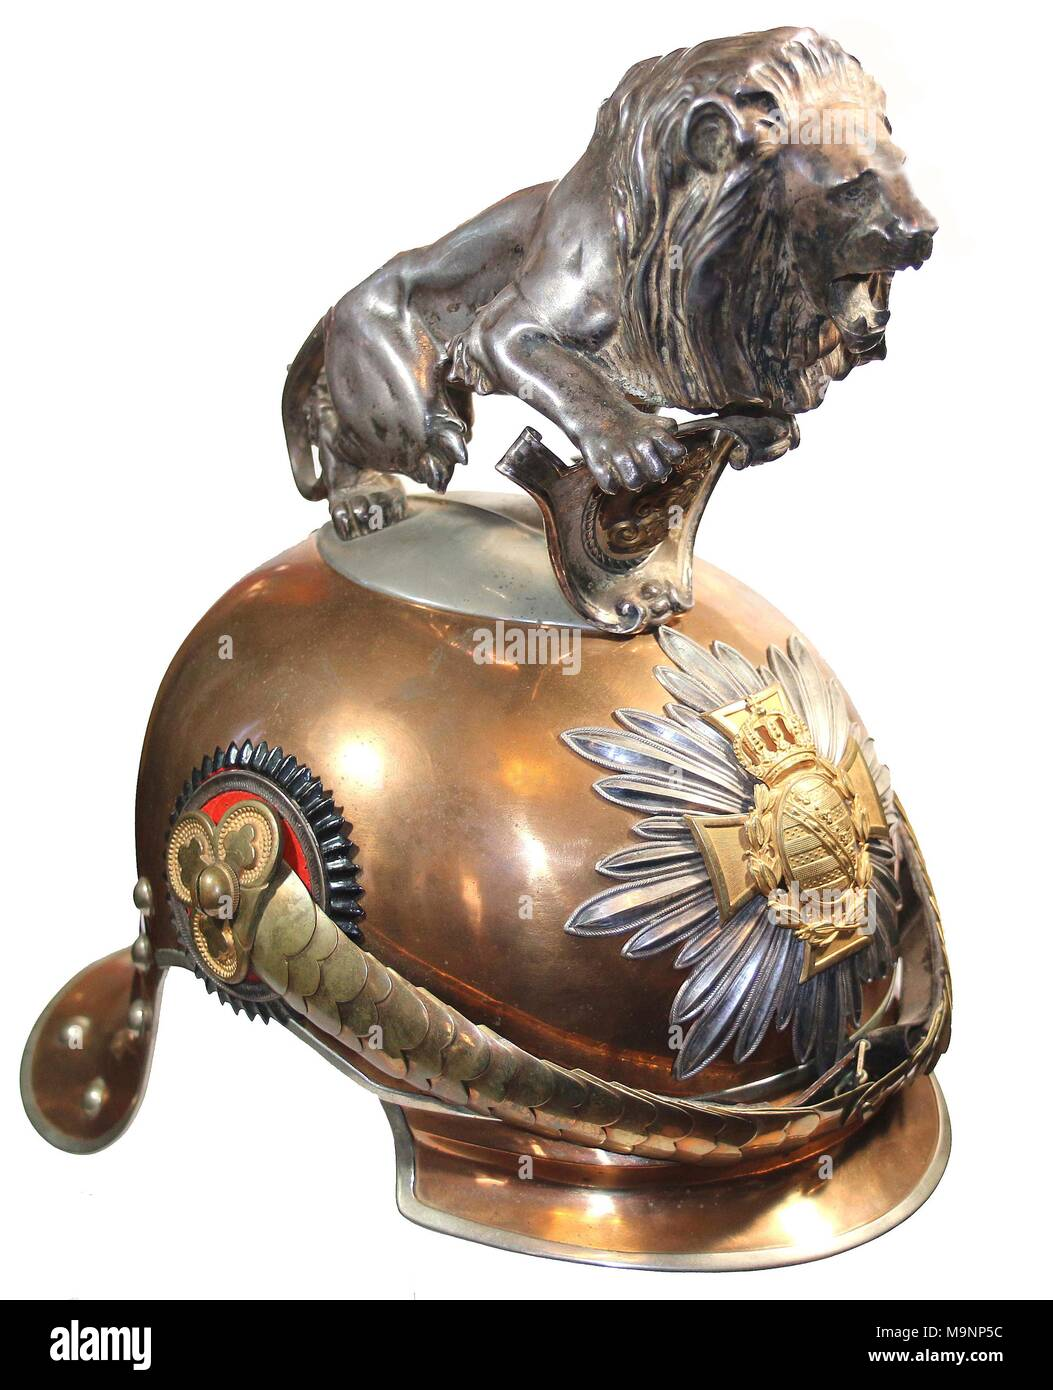 Saxon Garde-Reiter Regiment Parade helmet , pre World War 1 - Stock Image